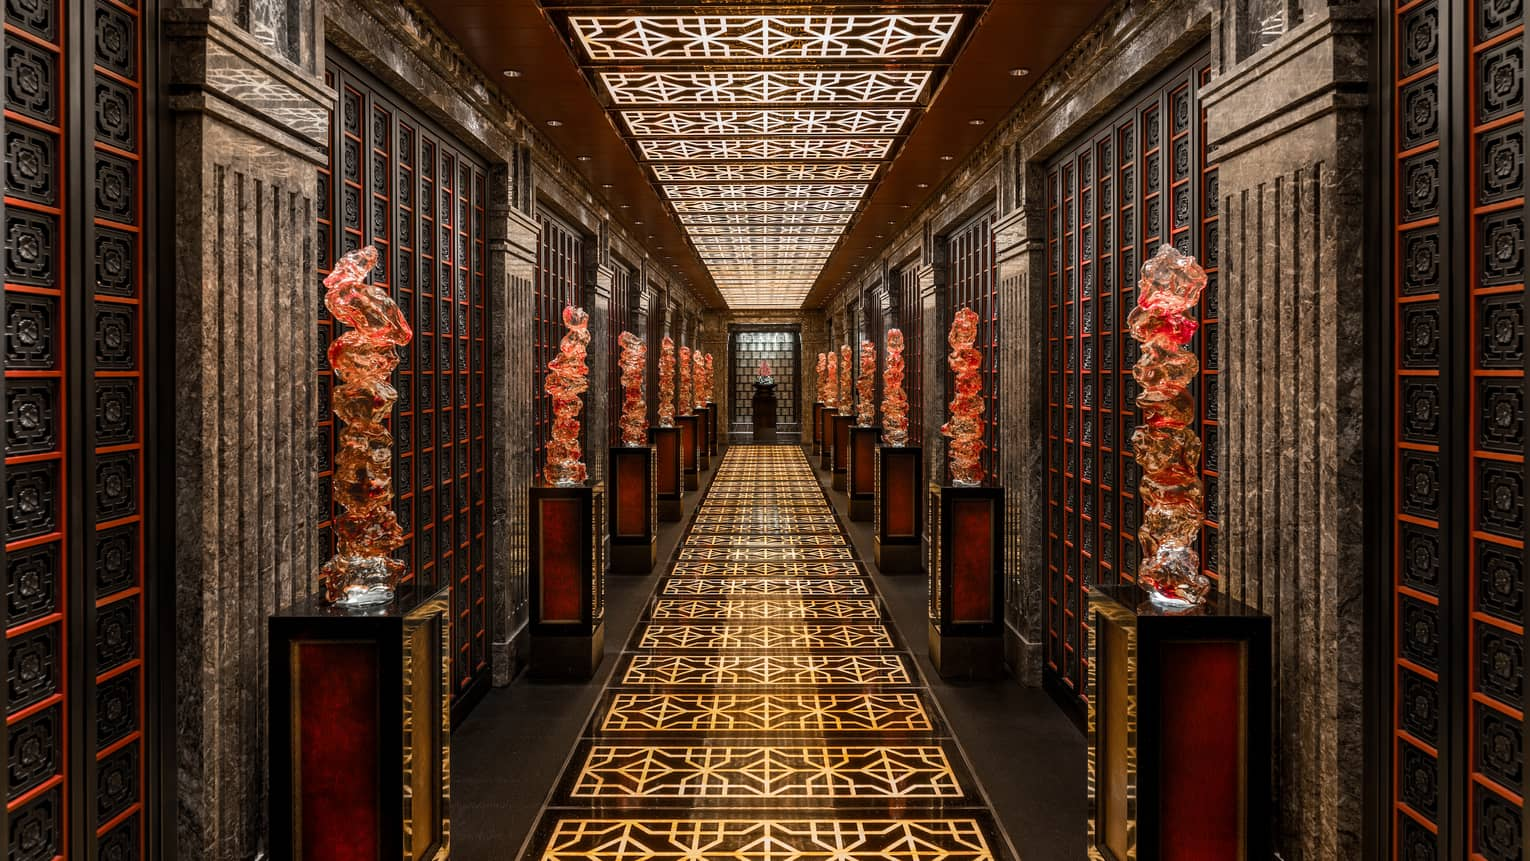 Long dimly-lit hallway at Cai Yi Xuan restaurant with gold pattern on floor, large red statues on pillars